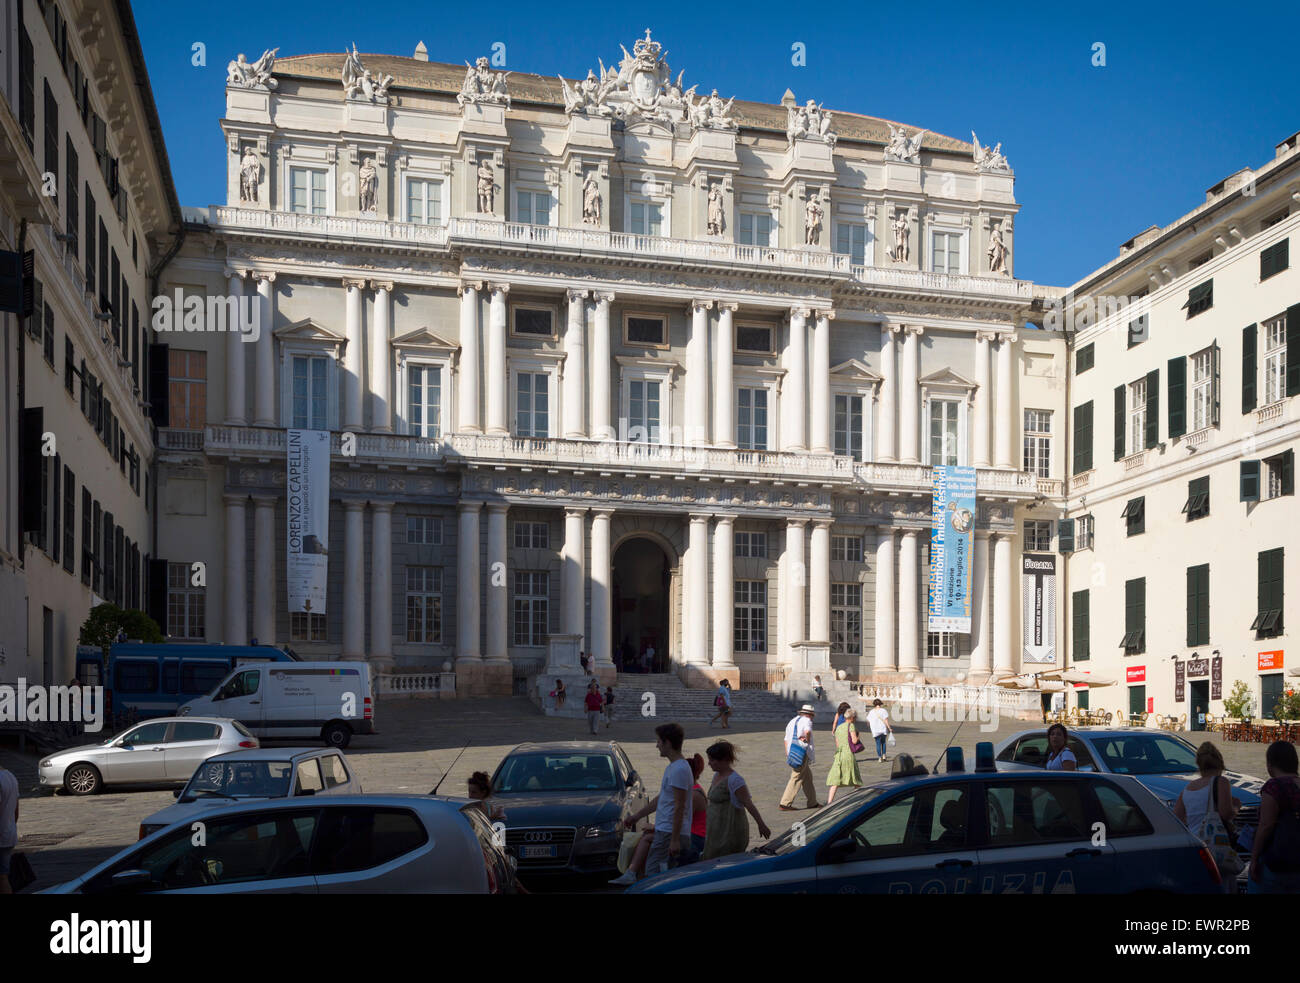 Genoa, Liguria, Italy.  16th century Palazzo Ducale.  Ducal Palace. - Stock Image